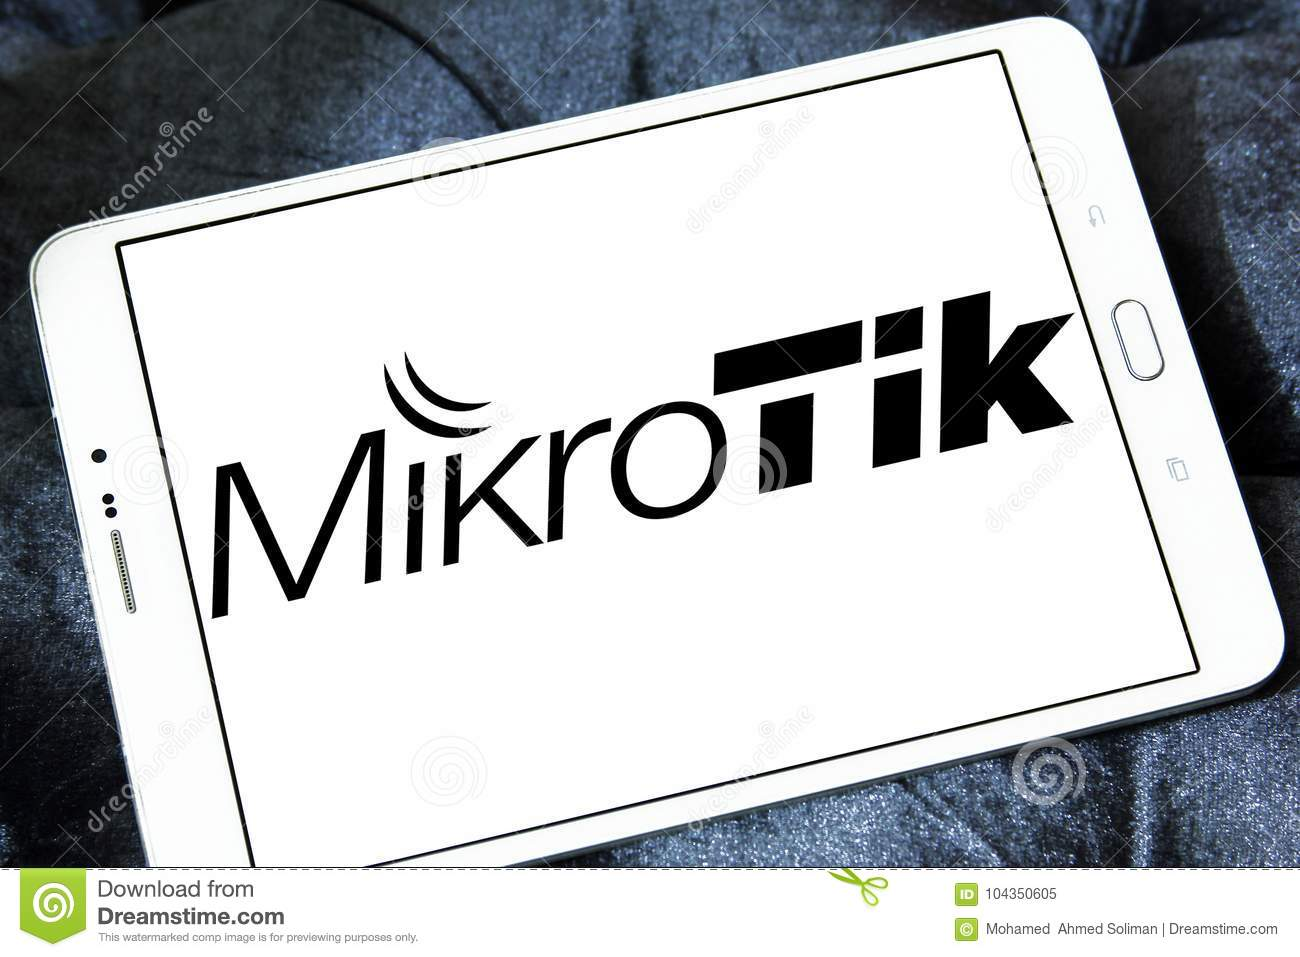 mikrotik computer networking company logo editorial image image of american firewalls 104350605 https www dreamstime com mikrotik computer networking company logo samsung tablet latvian manufacturer equipment sells wireless products image104350605